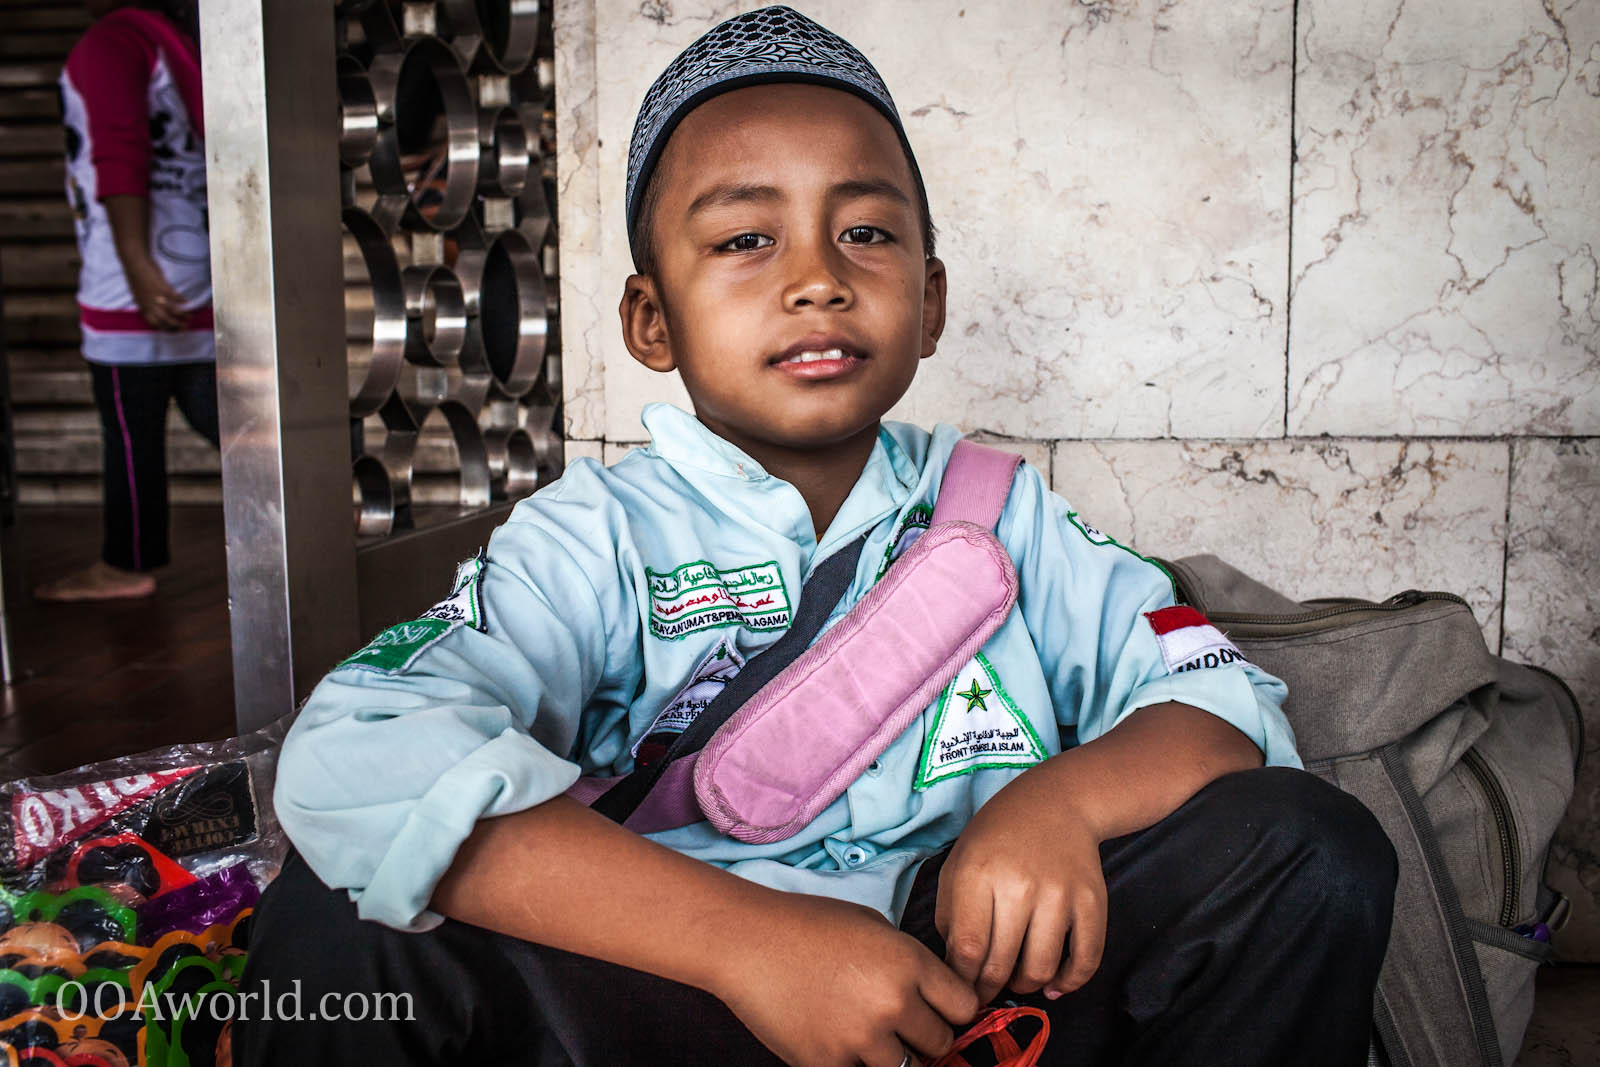 Masjid Istiqlal Mosque Boy Portrait Photo Ooaworld